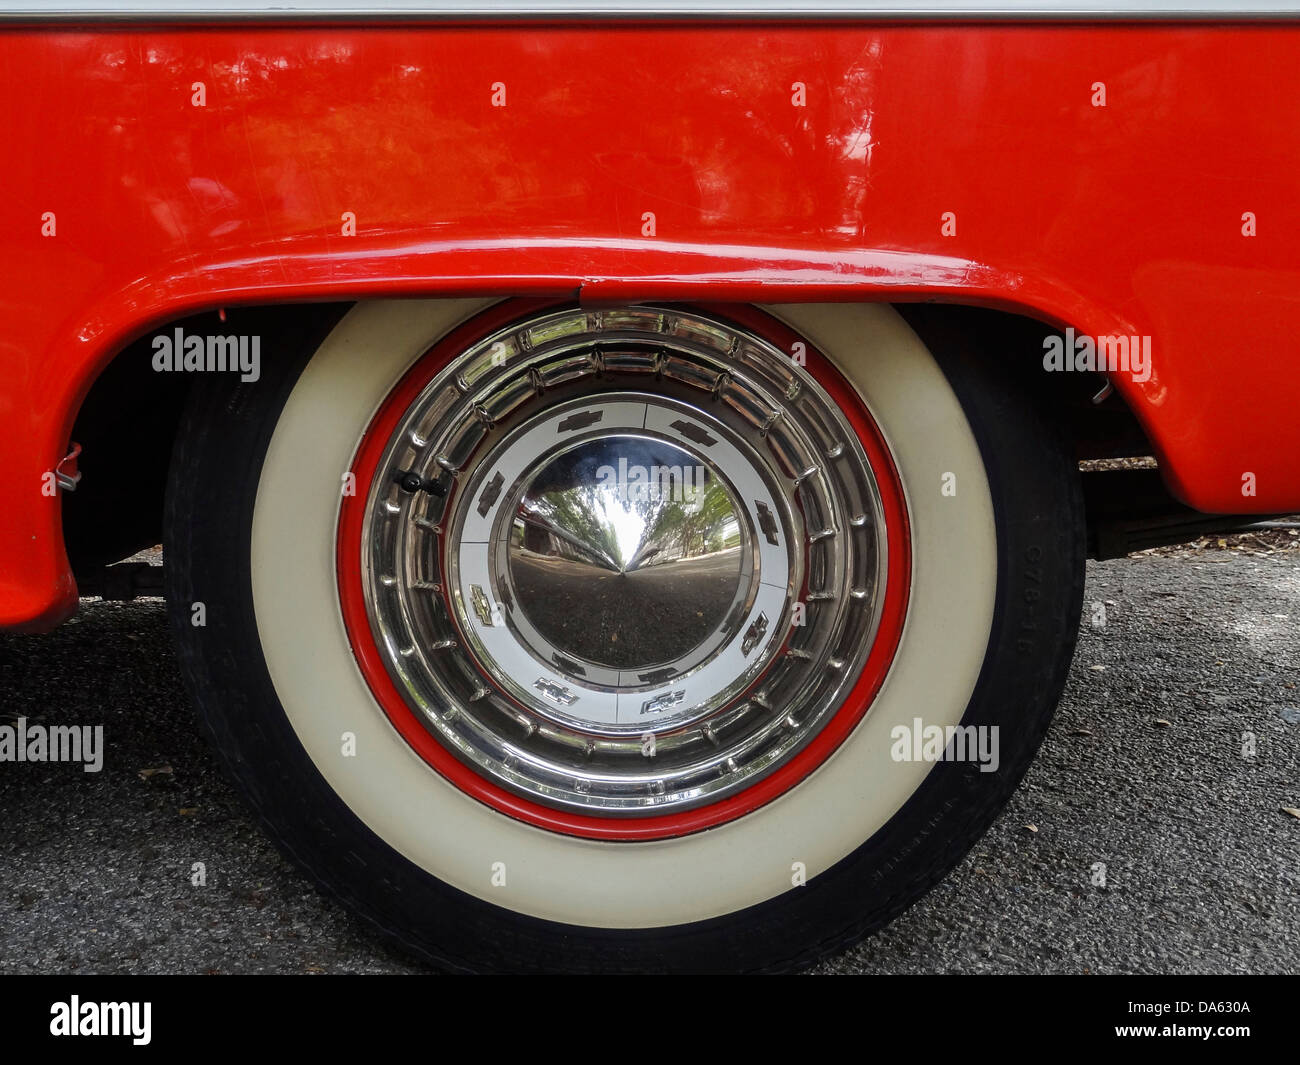 1955, Classic car, Chevrolet, Bel Air, General Motors, New Braunfels, old, car, red, white, Texas, USA, United States, - Stock Image